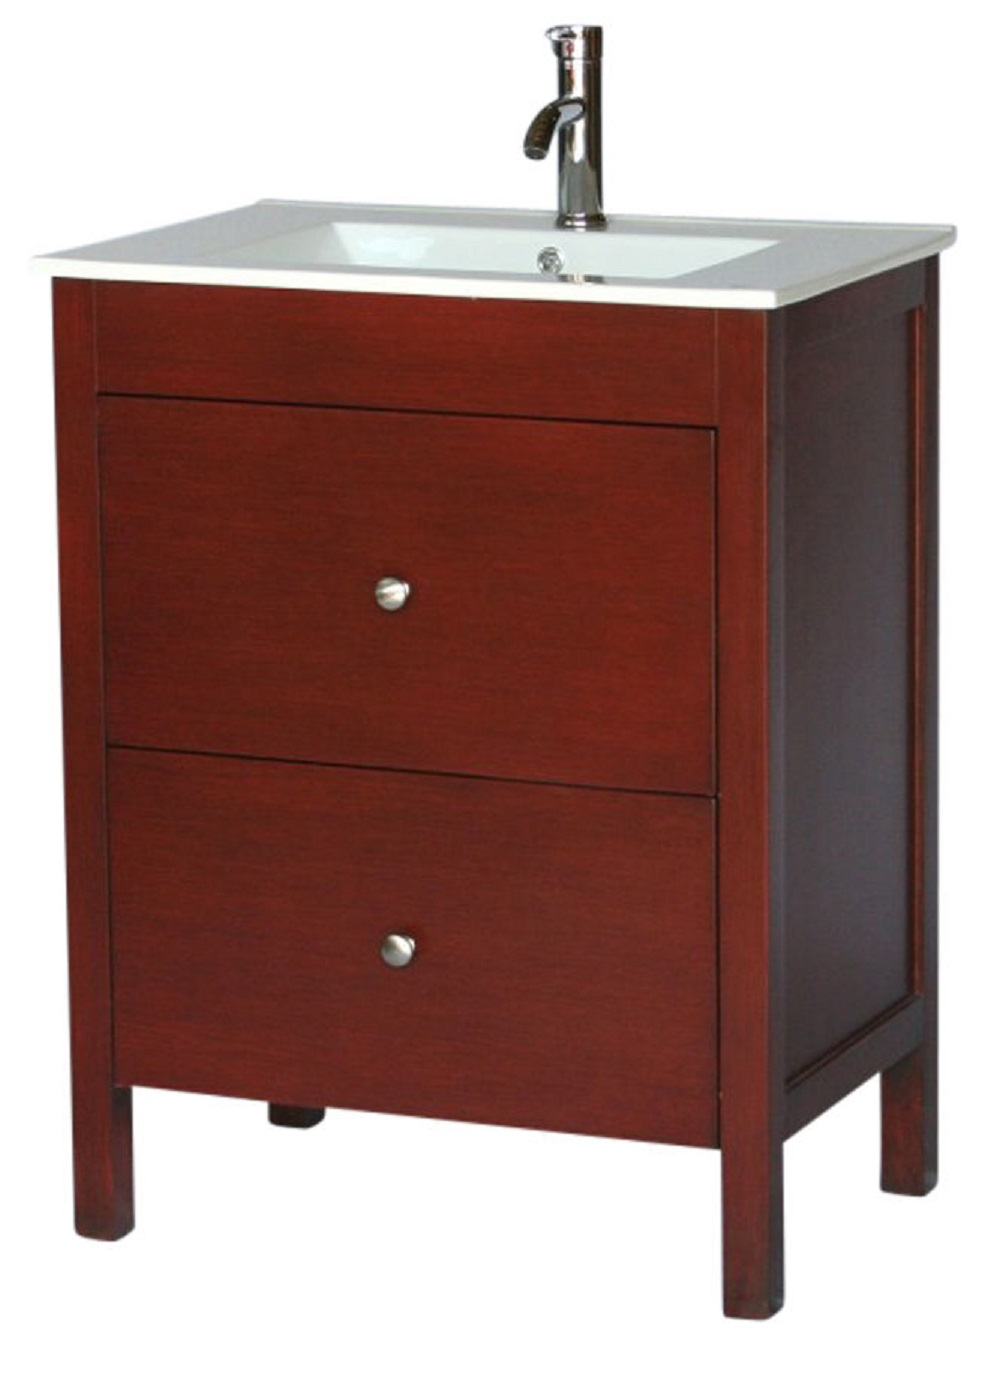 28 Inch 18 Inch Deep Bathroom Vanity Modern Style Cherry Color 28 Wx18 Dx36 H S3022f